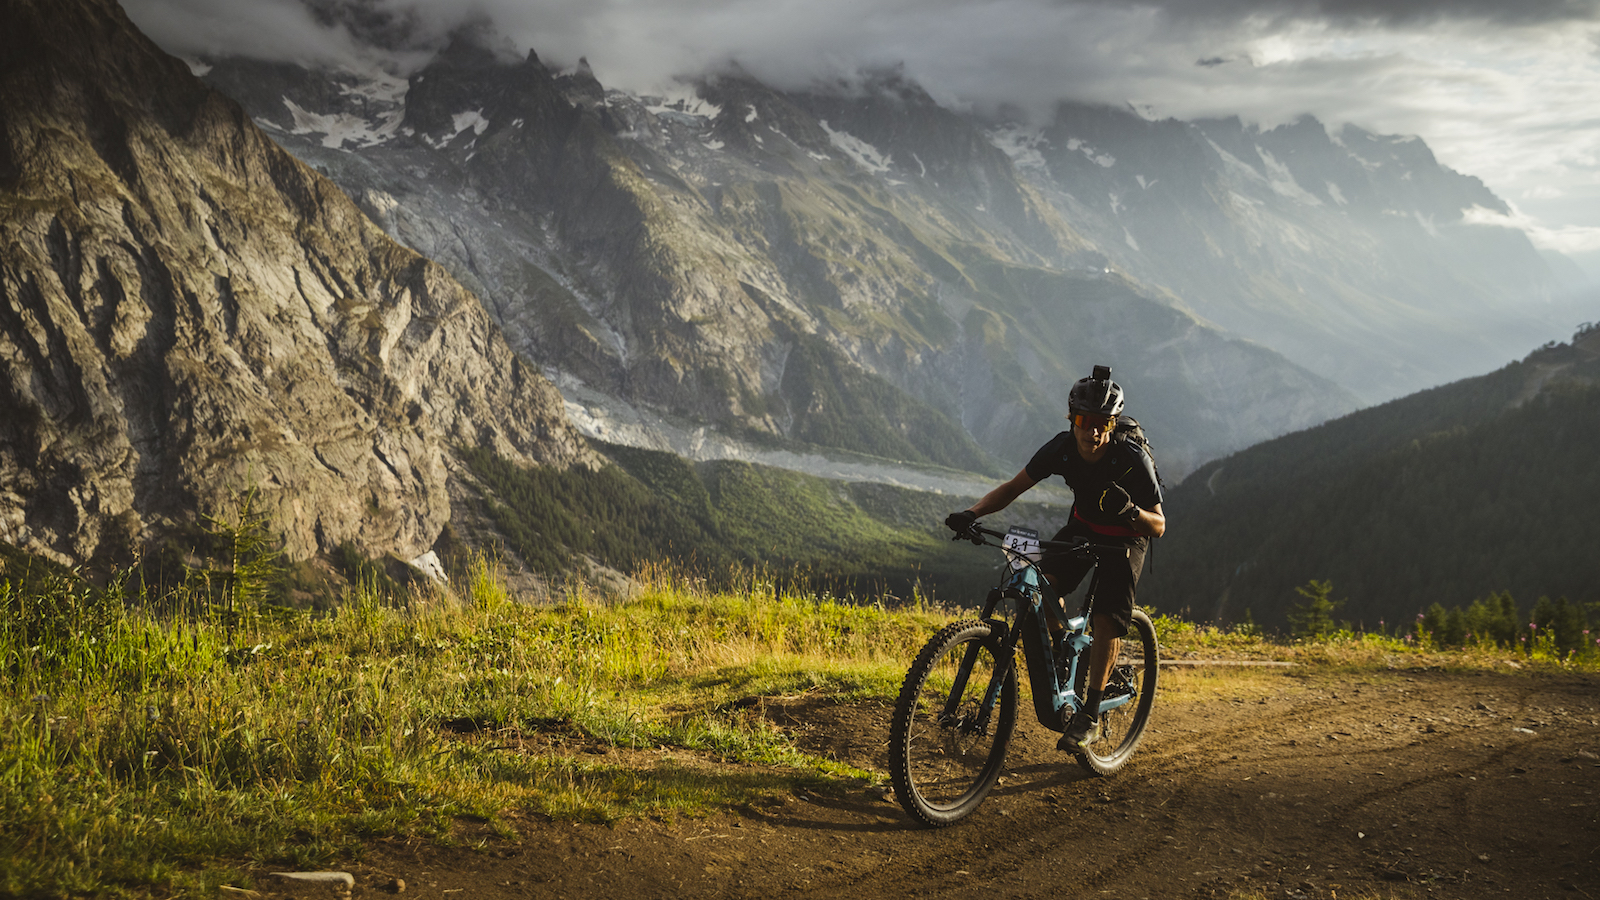 E-bike World Tour is now sanctioned by the UCI. Will e-MTB racing catch on?